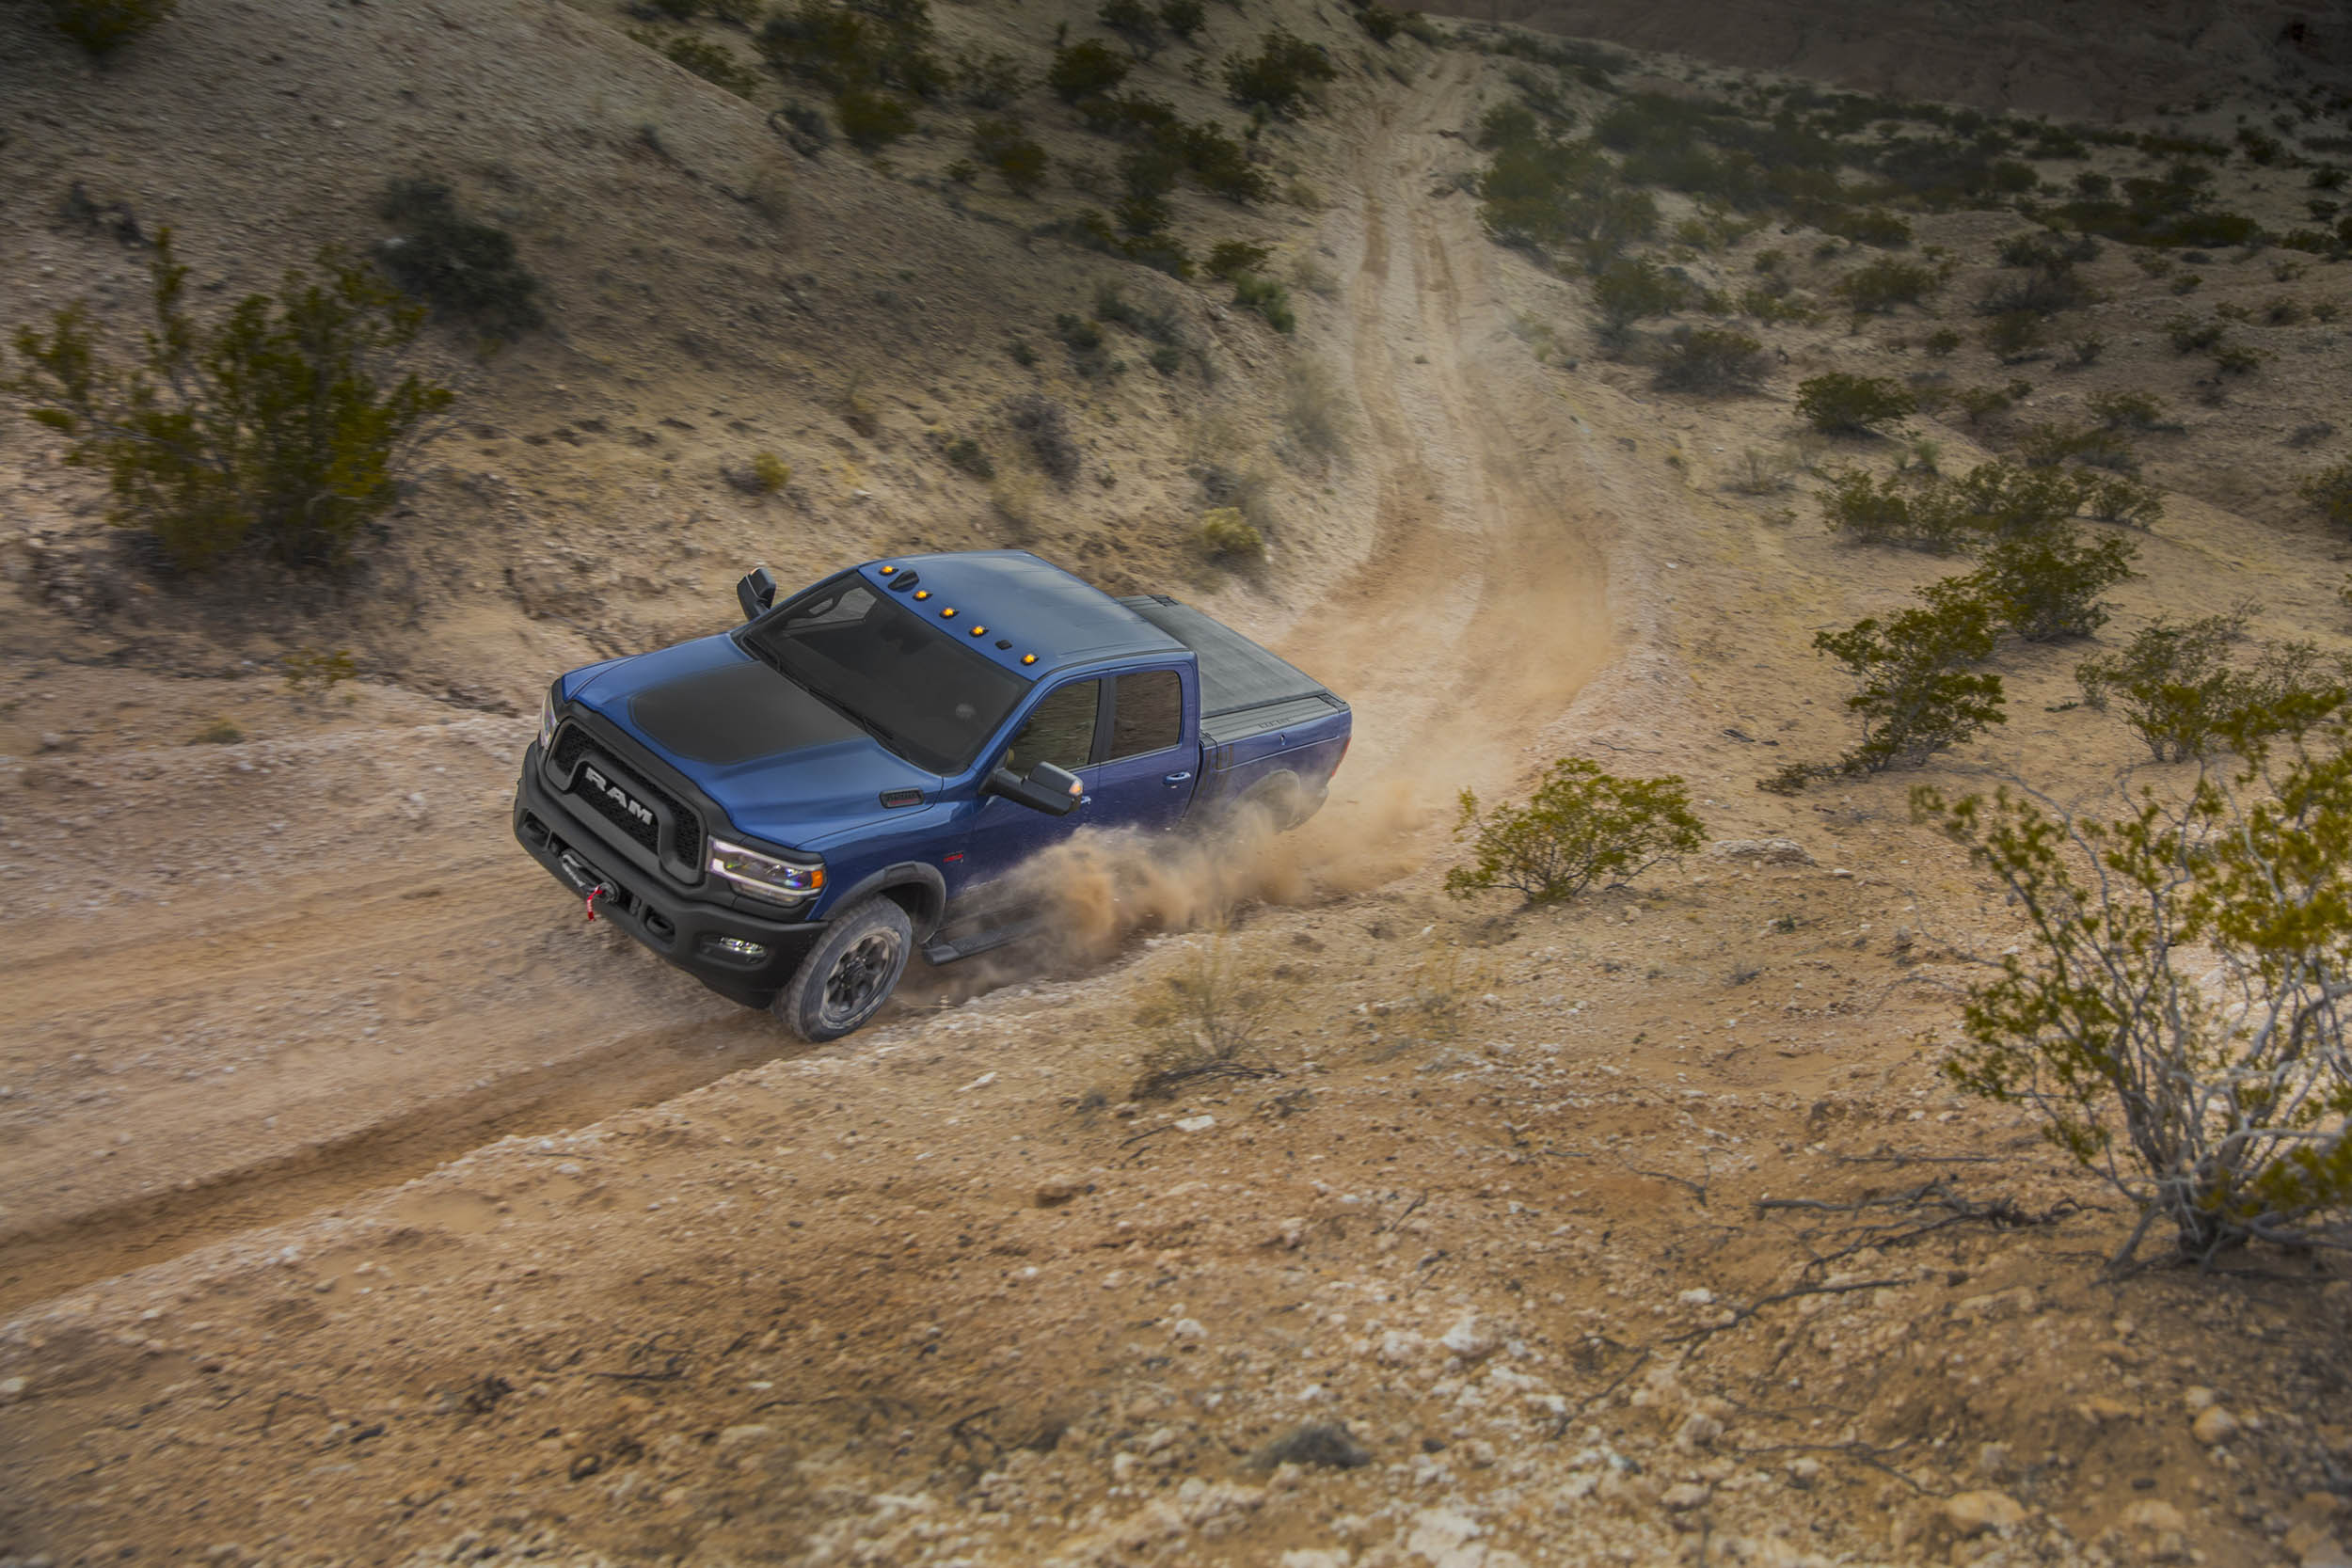 2019 RAM Power Wagon on the trails